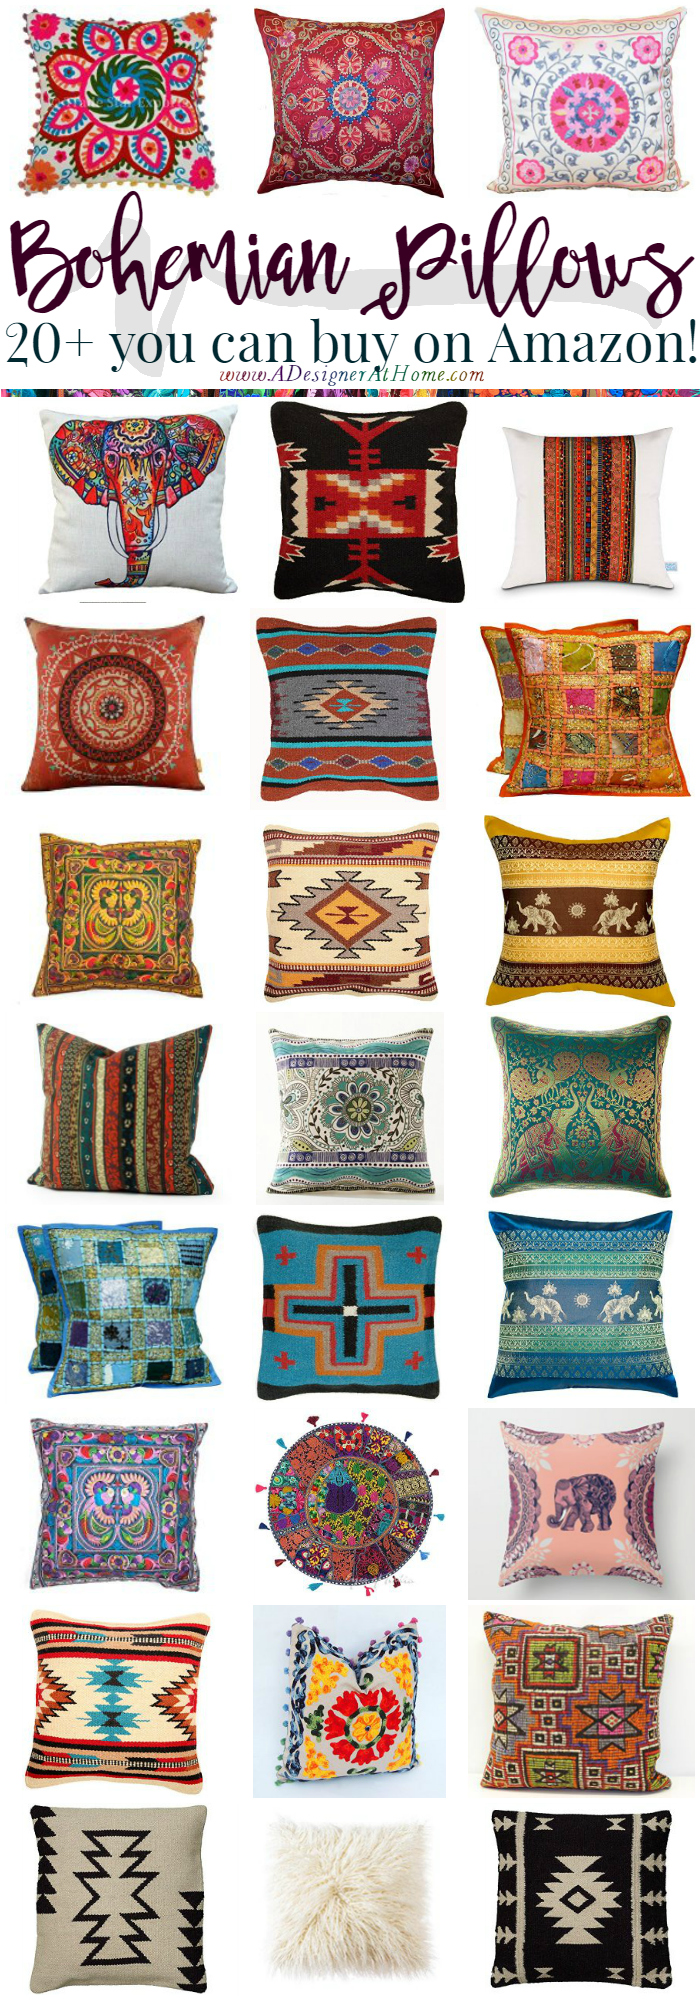 20+ bohemian style pillows you can buy on Amason